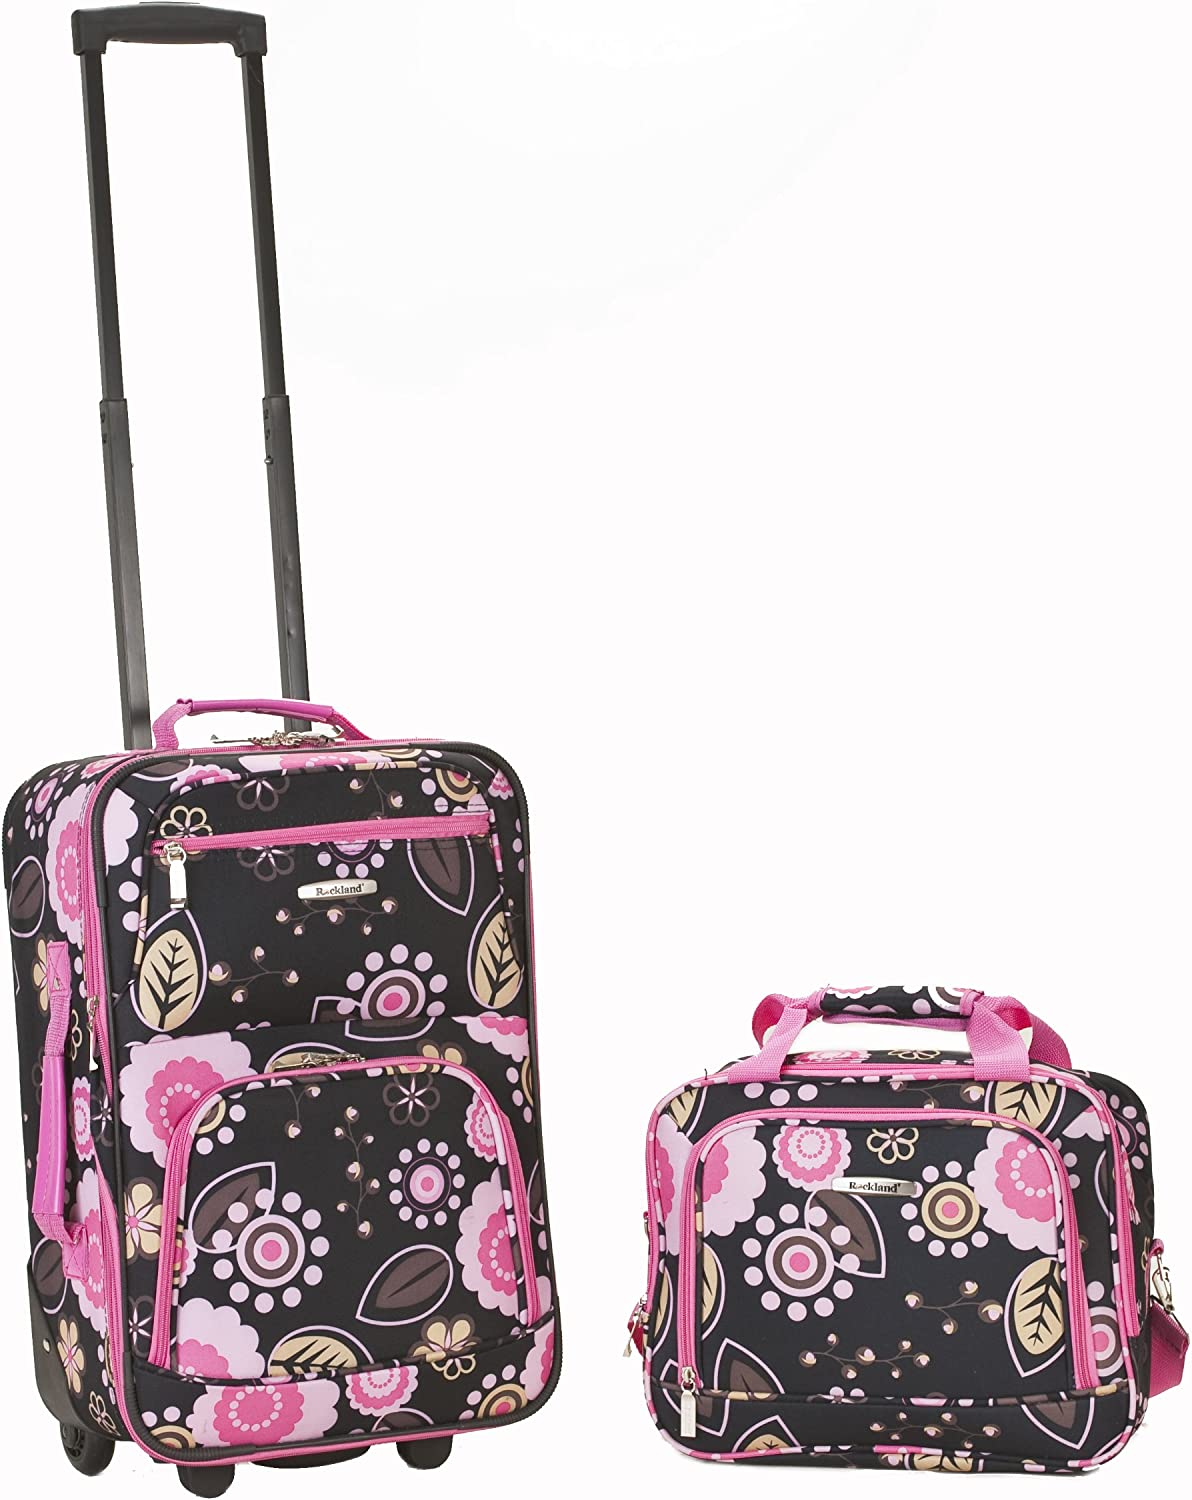 Rockland Luggage 2 Piece Printed Set, Pucci, Medium